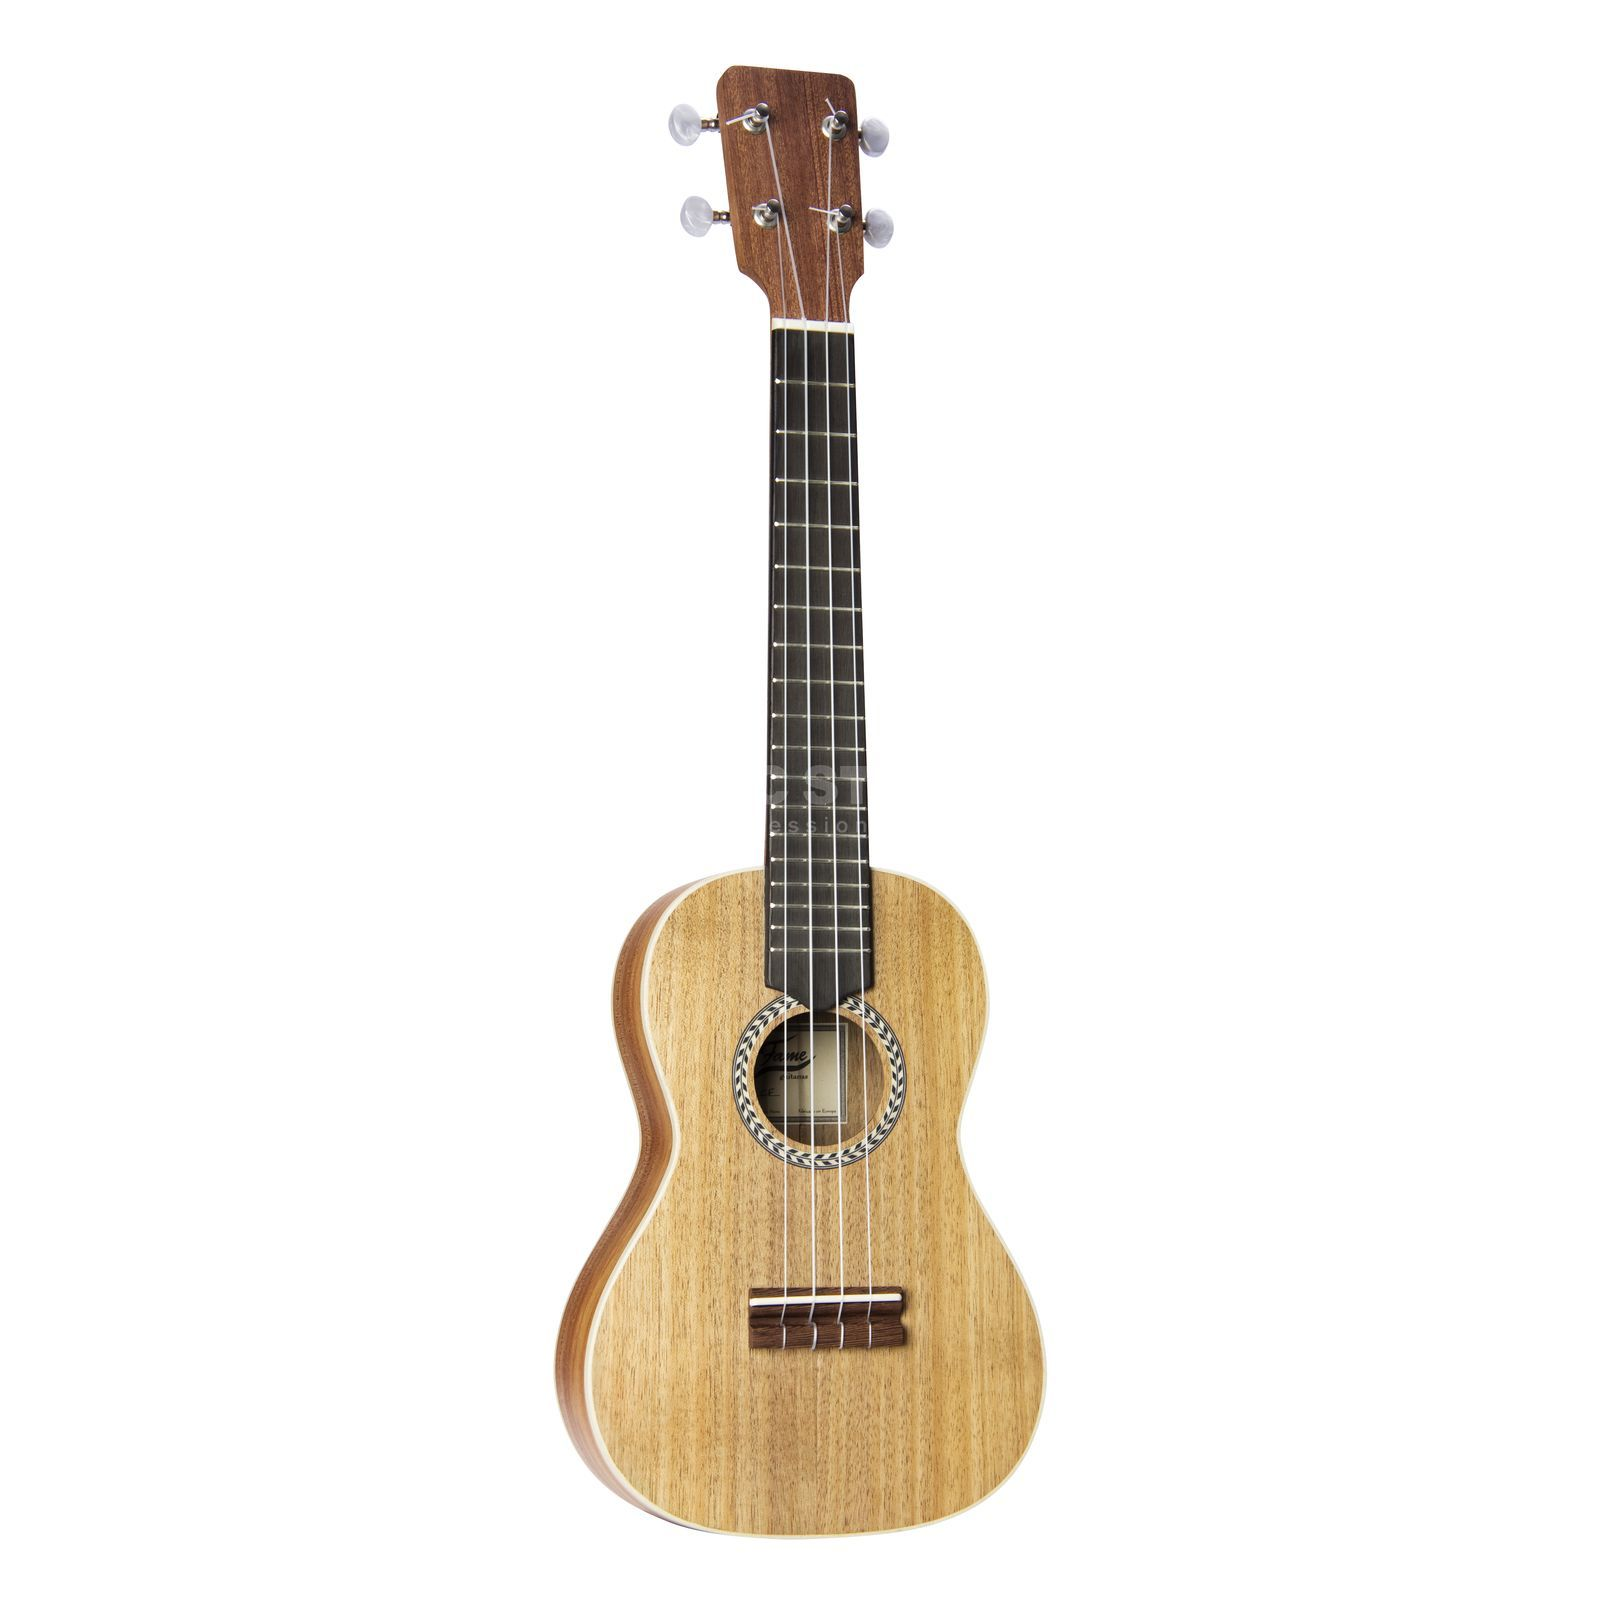 Fame Ukulele Konzert Port. Koa,vollmassiv,incl. Bag Product Image